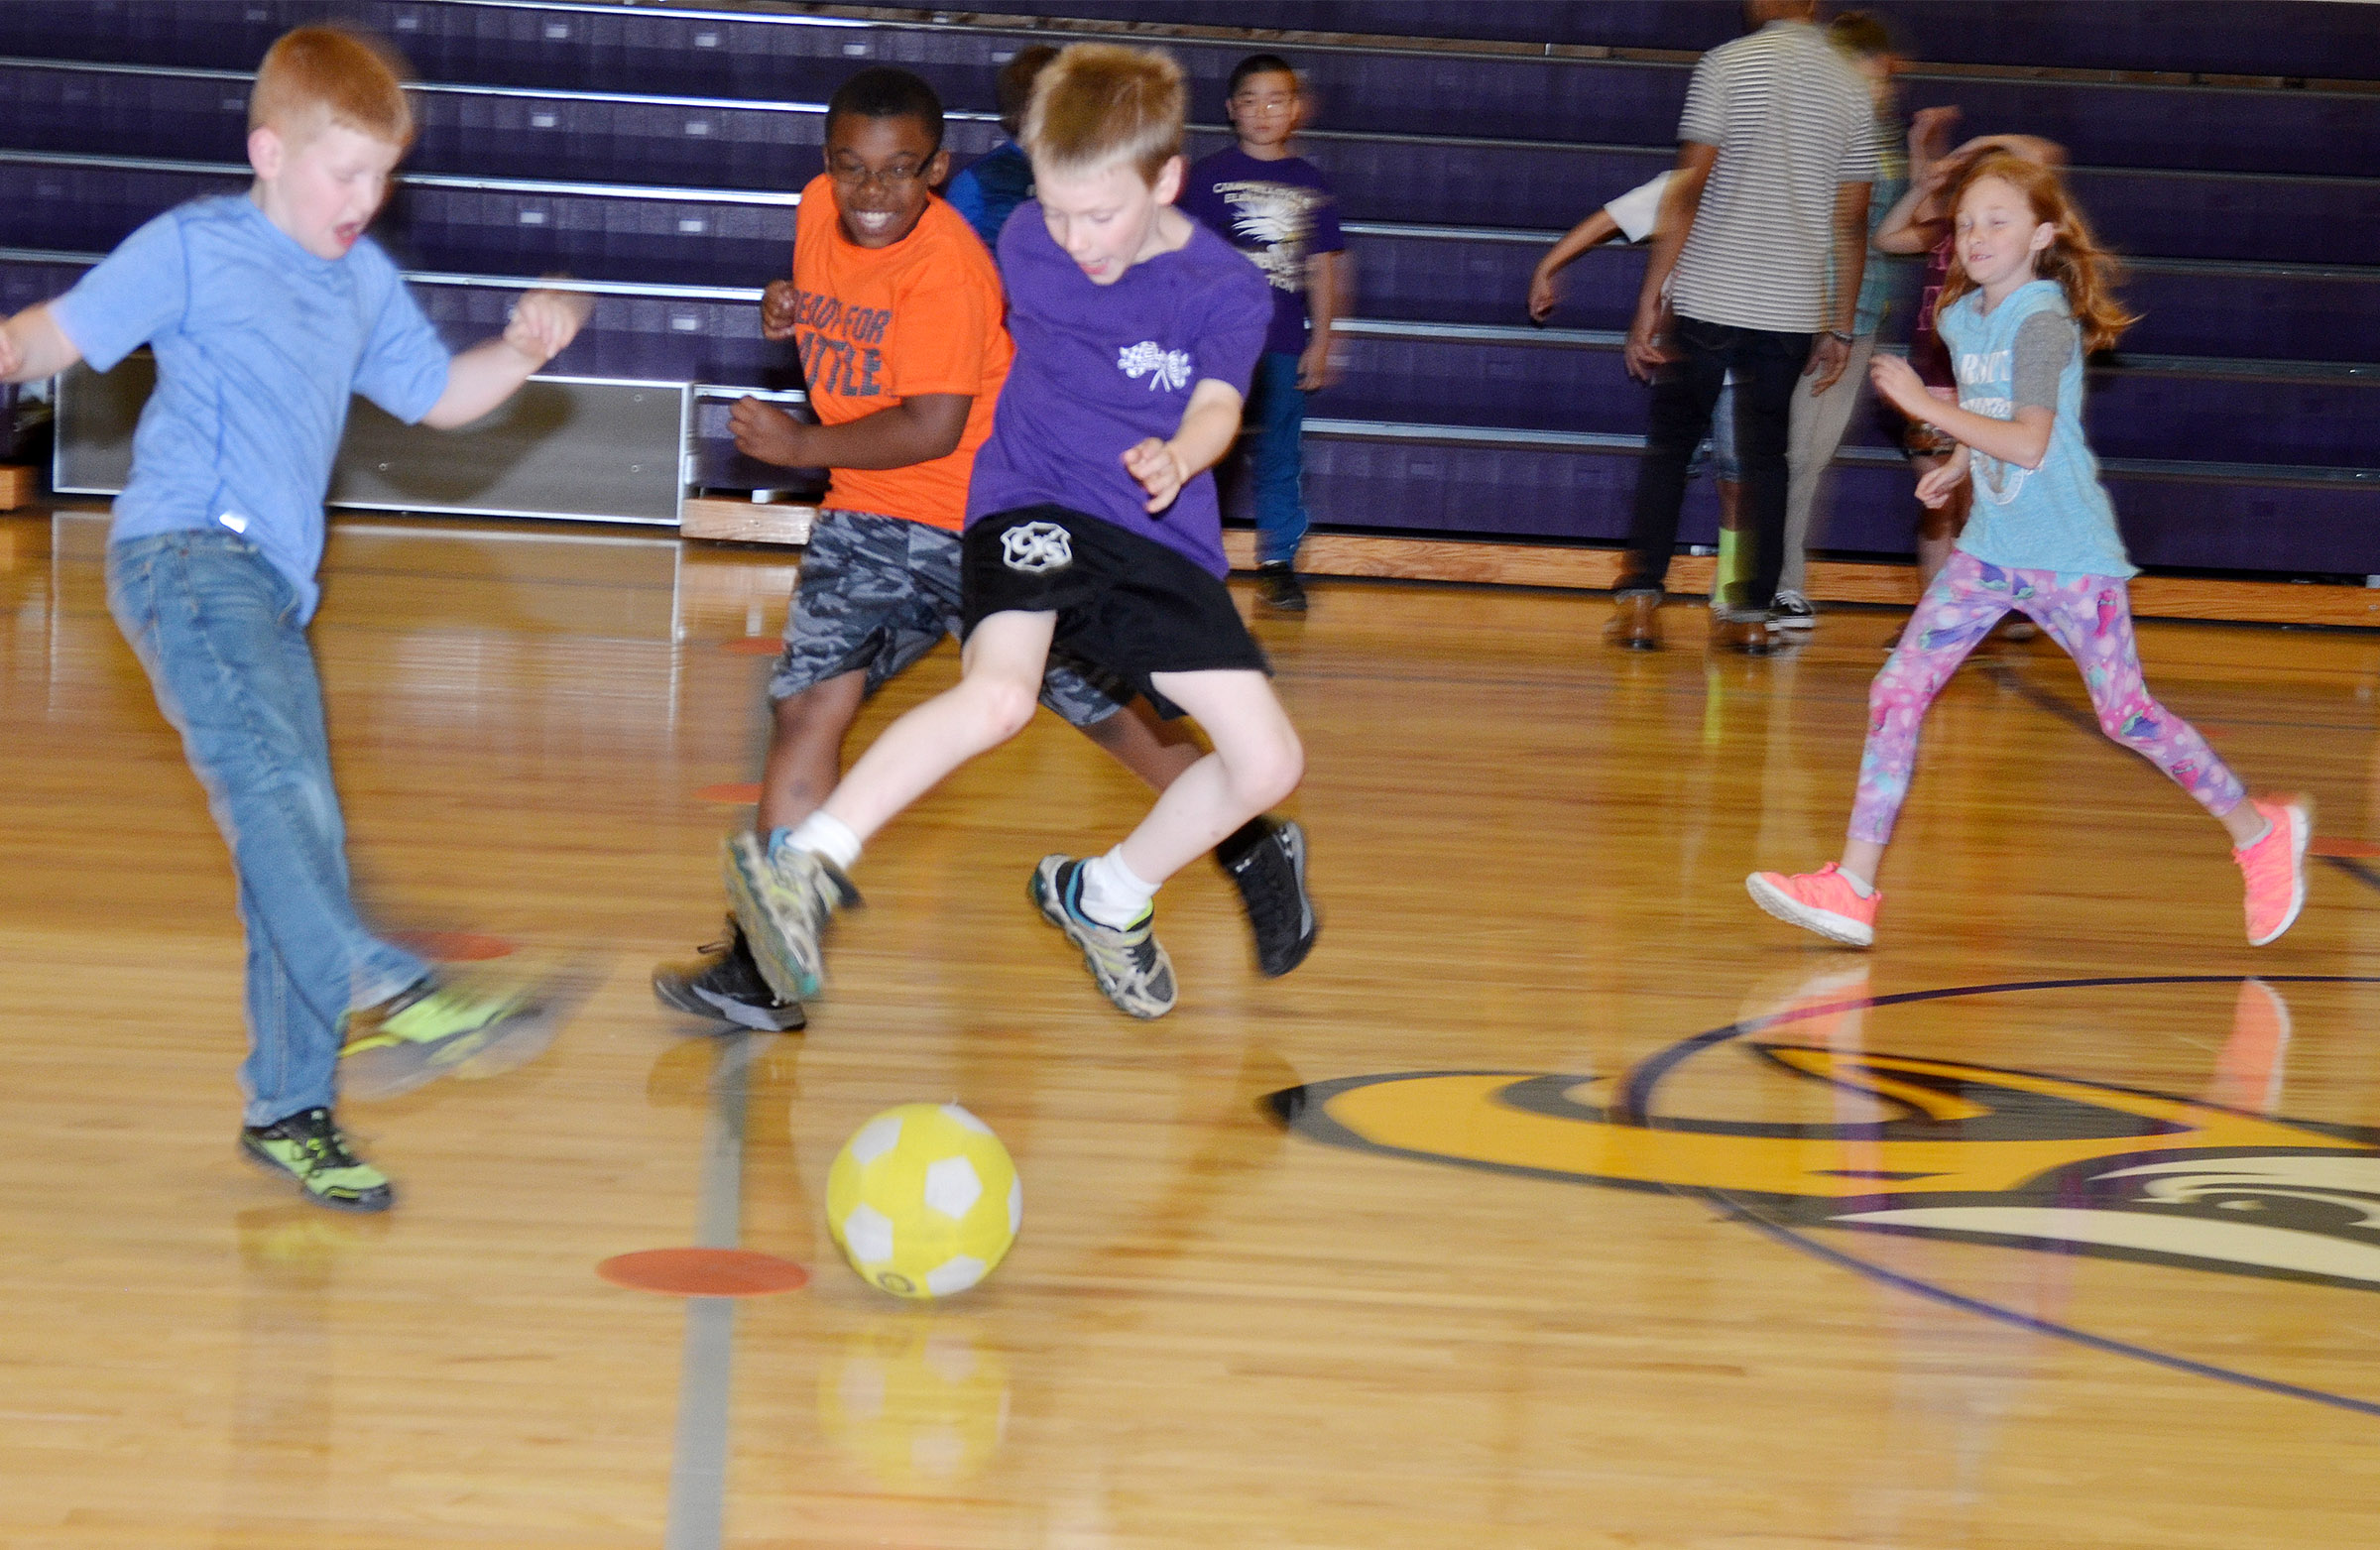 CES third-grader Connor Coots, center, jumps to block the ball.